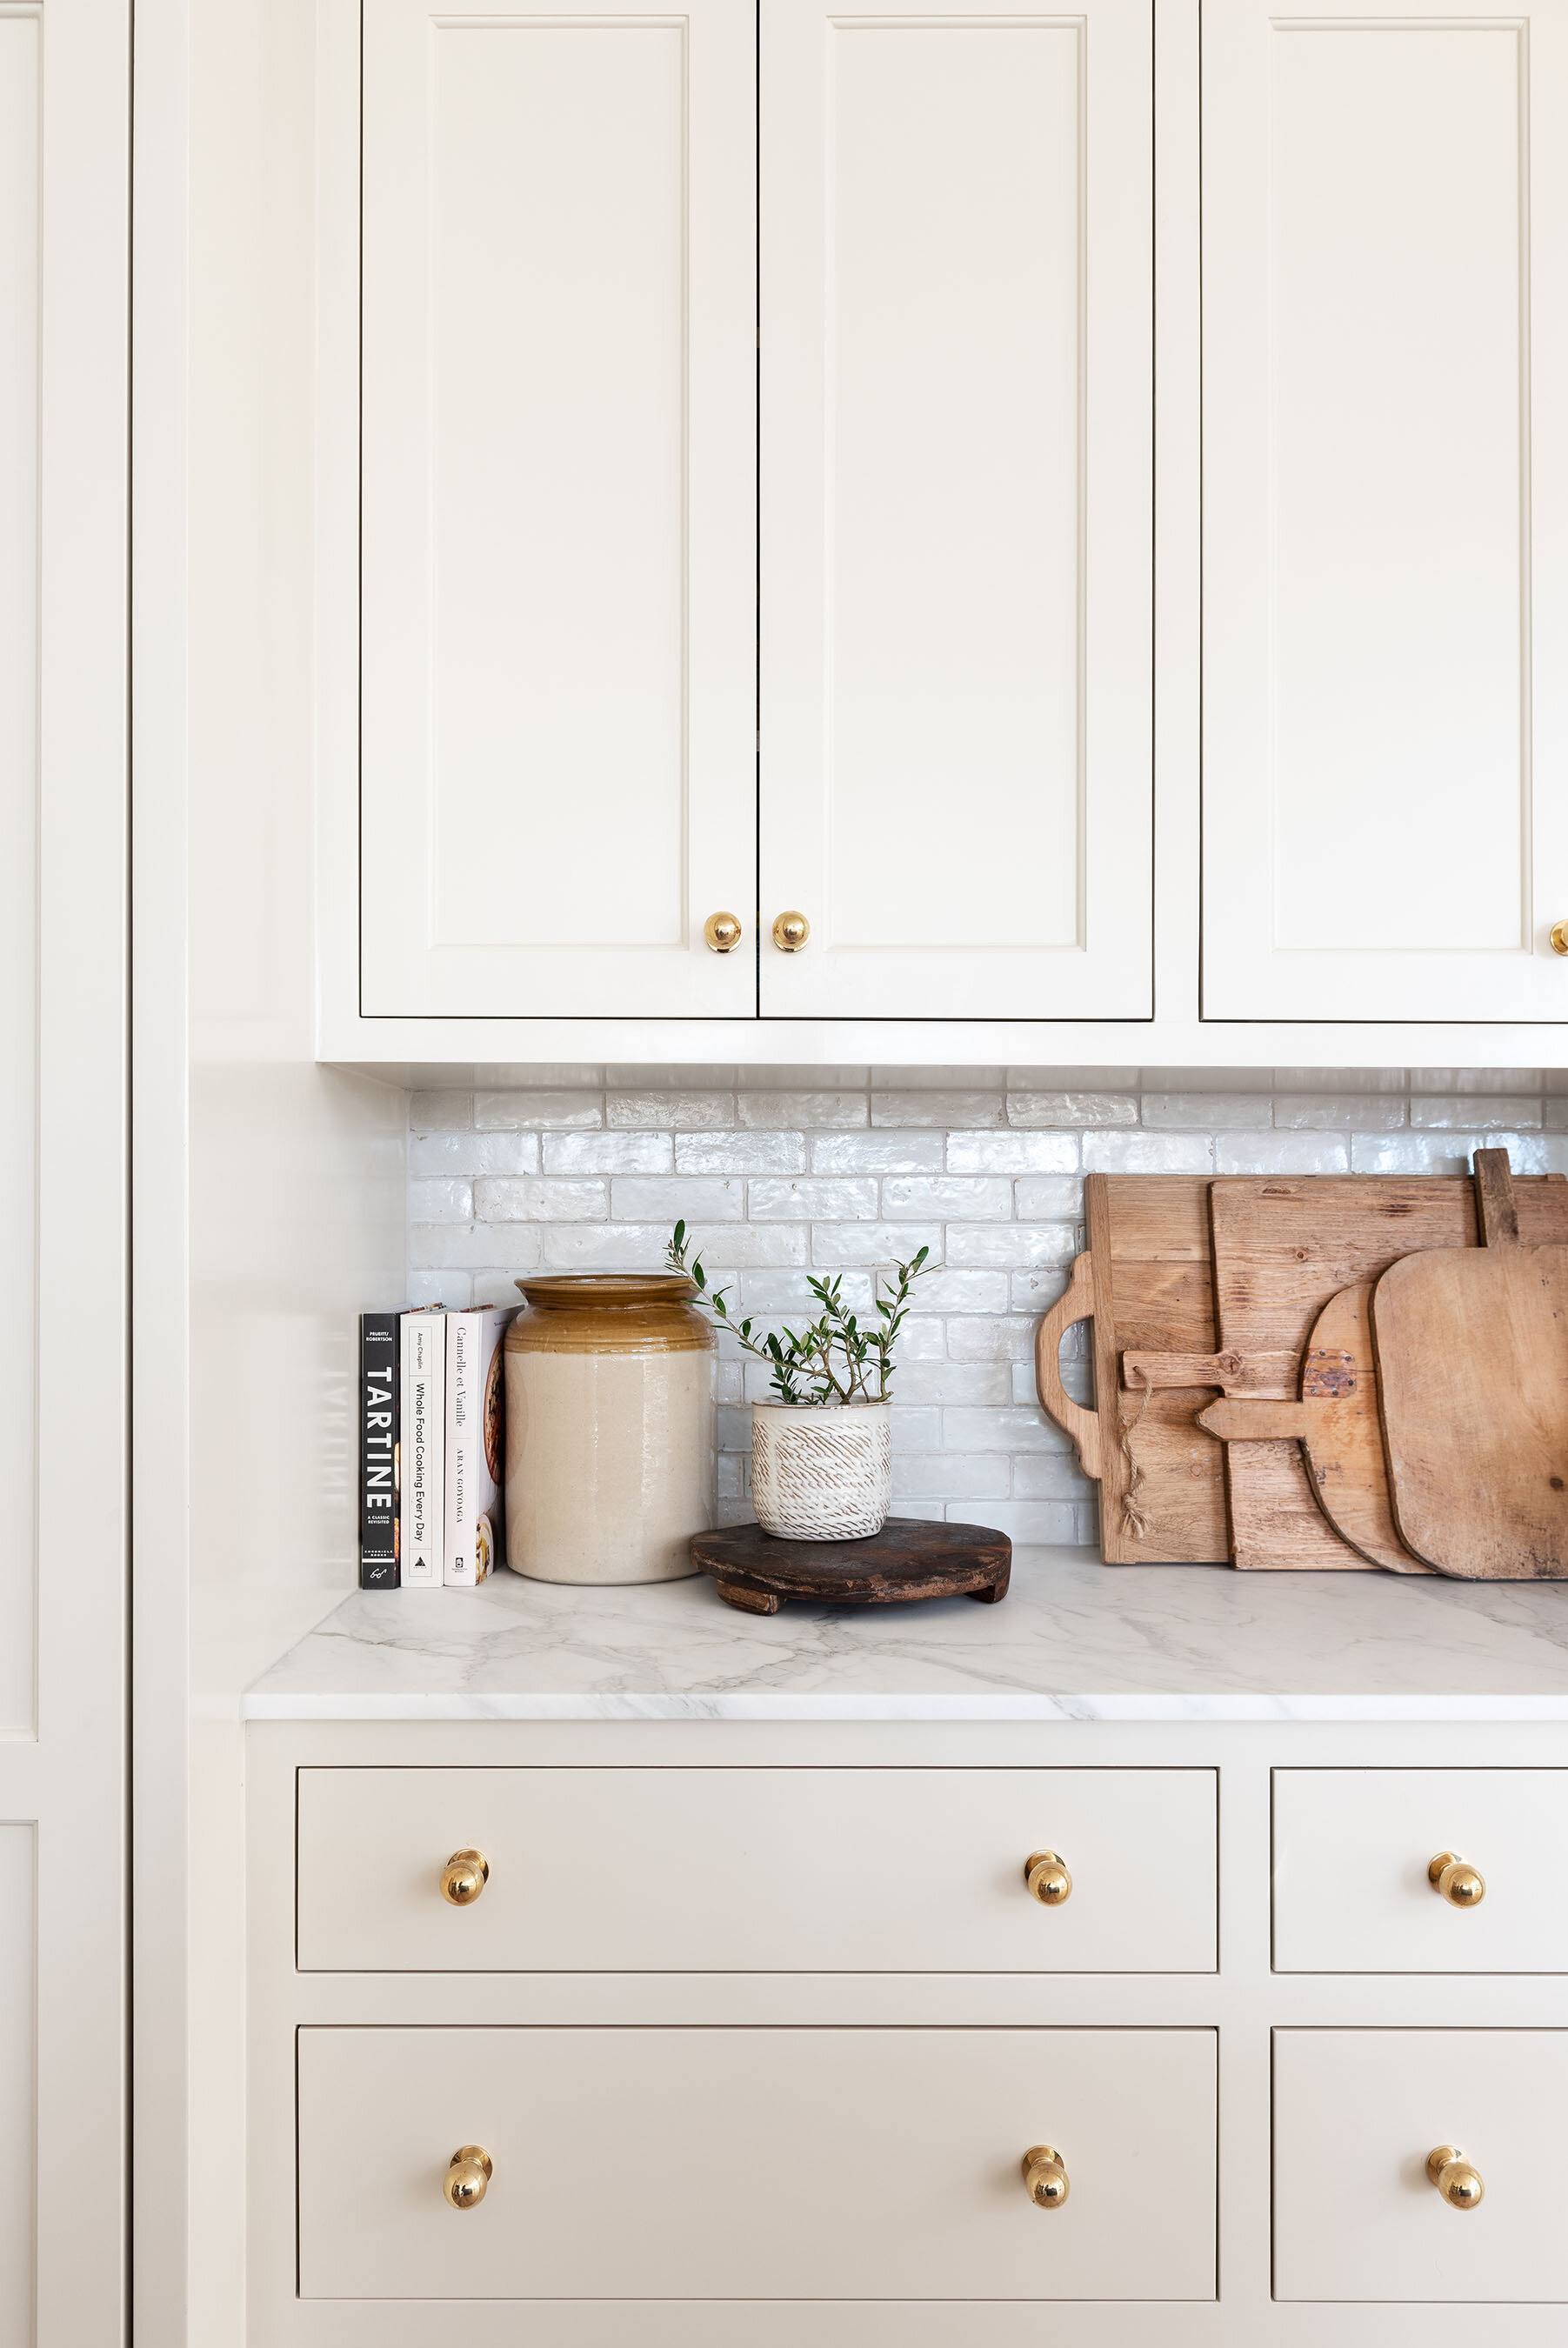 - Designing A Home With Tile - Studio McGee